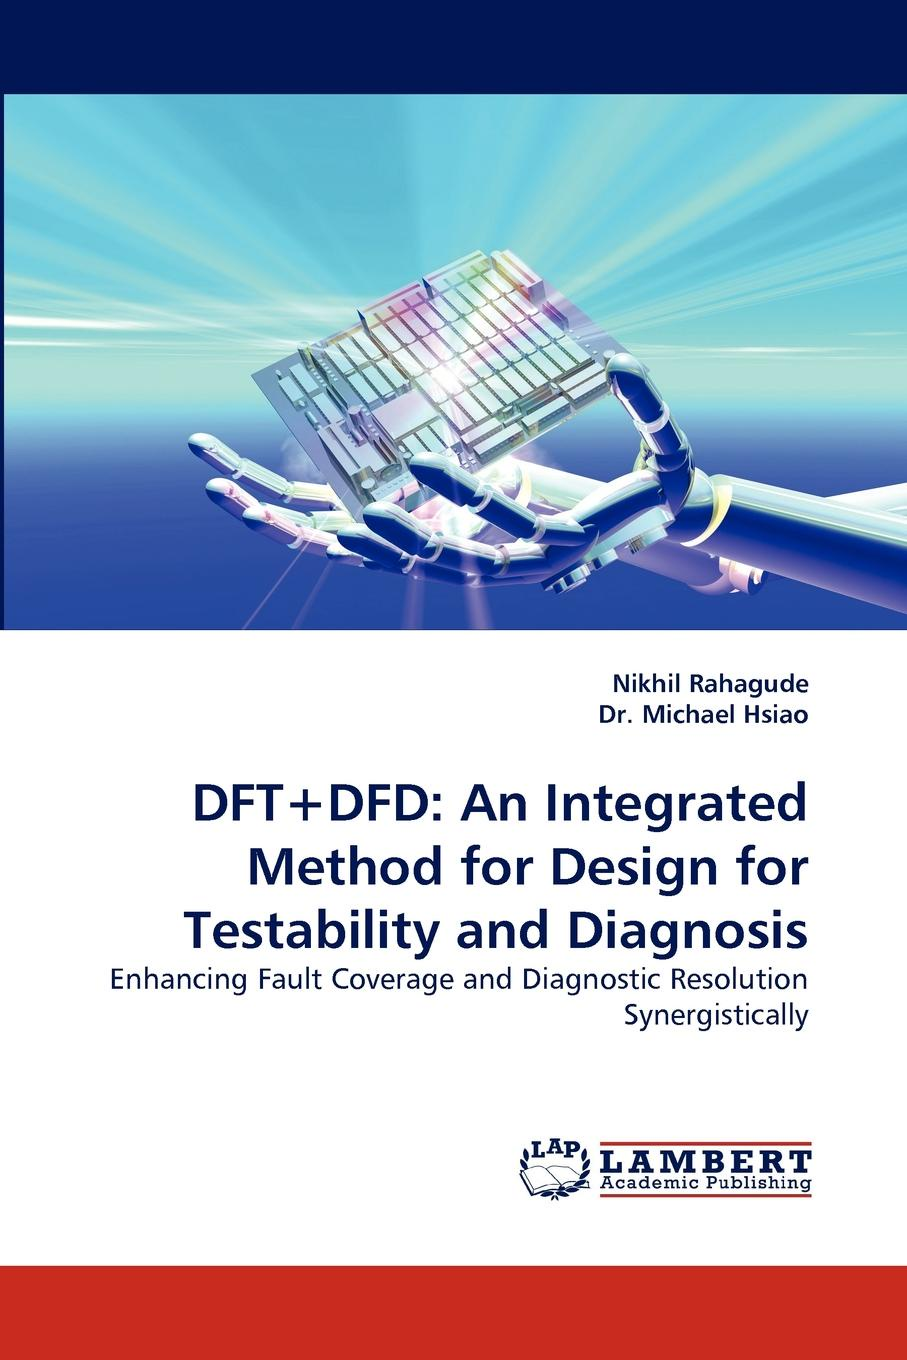 Nikhil Rahagude, Michael Hsiao DFT.Dfd. An Integrated Method for Design for Testability and Diagnosis stator line faults diagnosis of vsi fed im drive using fuzzylogic